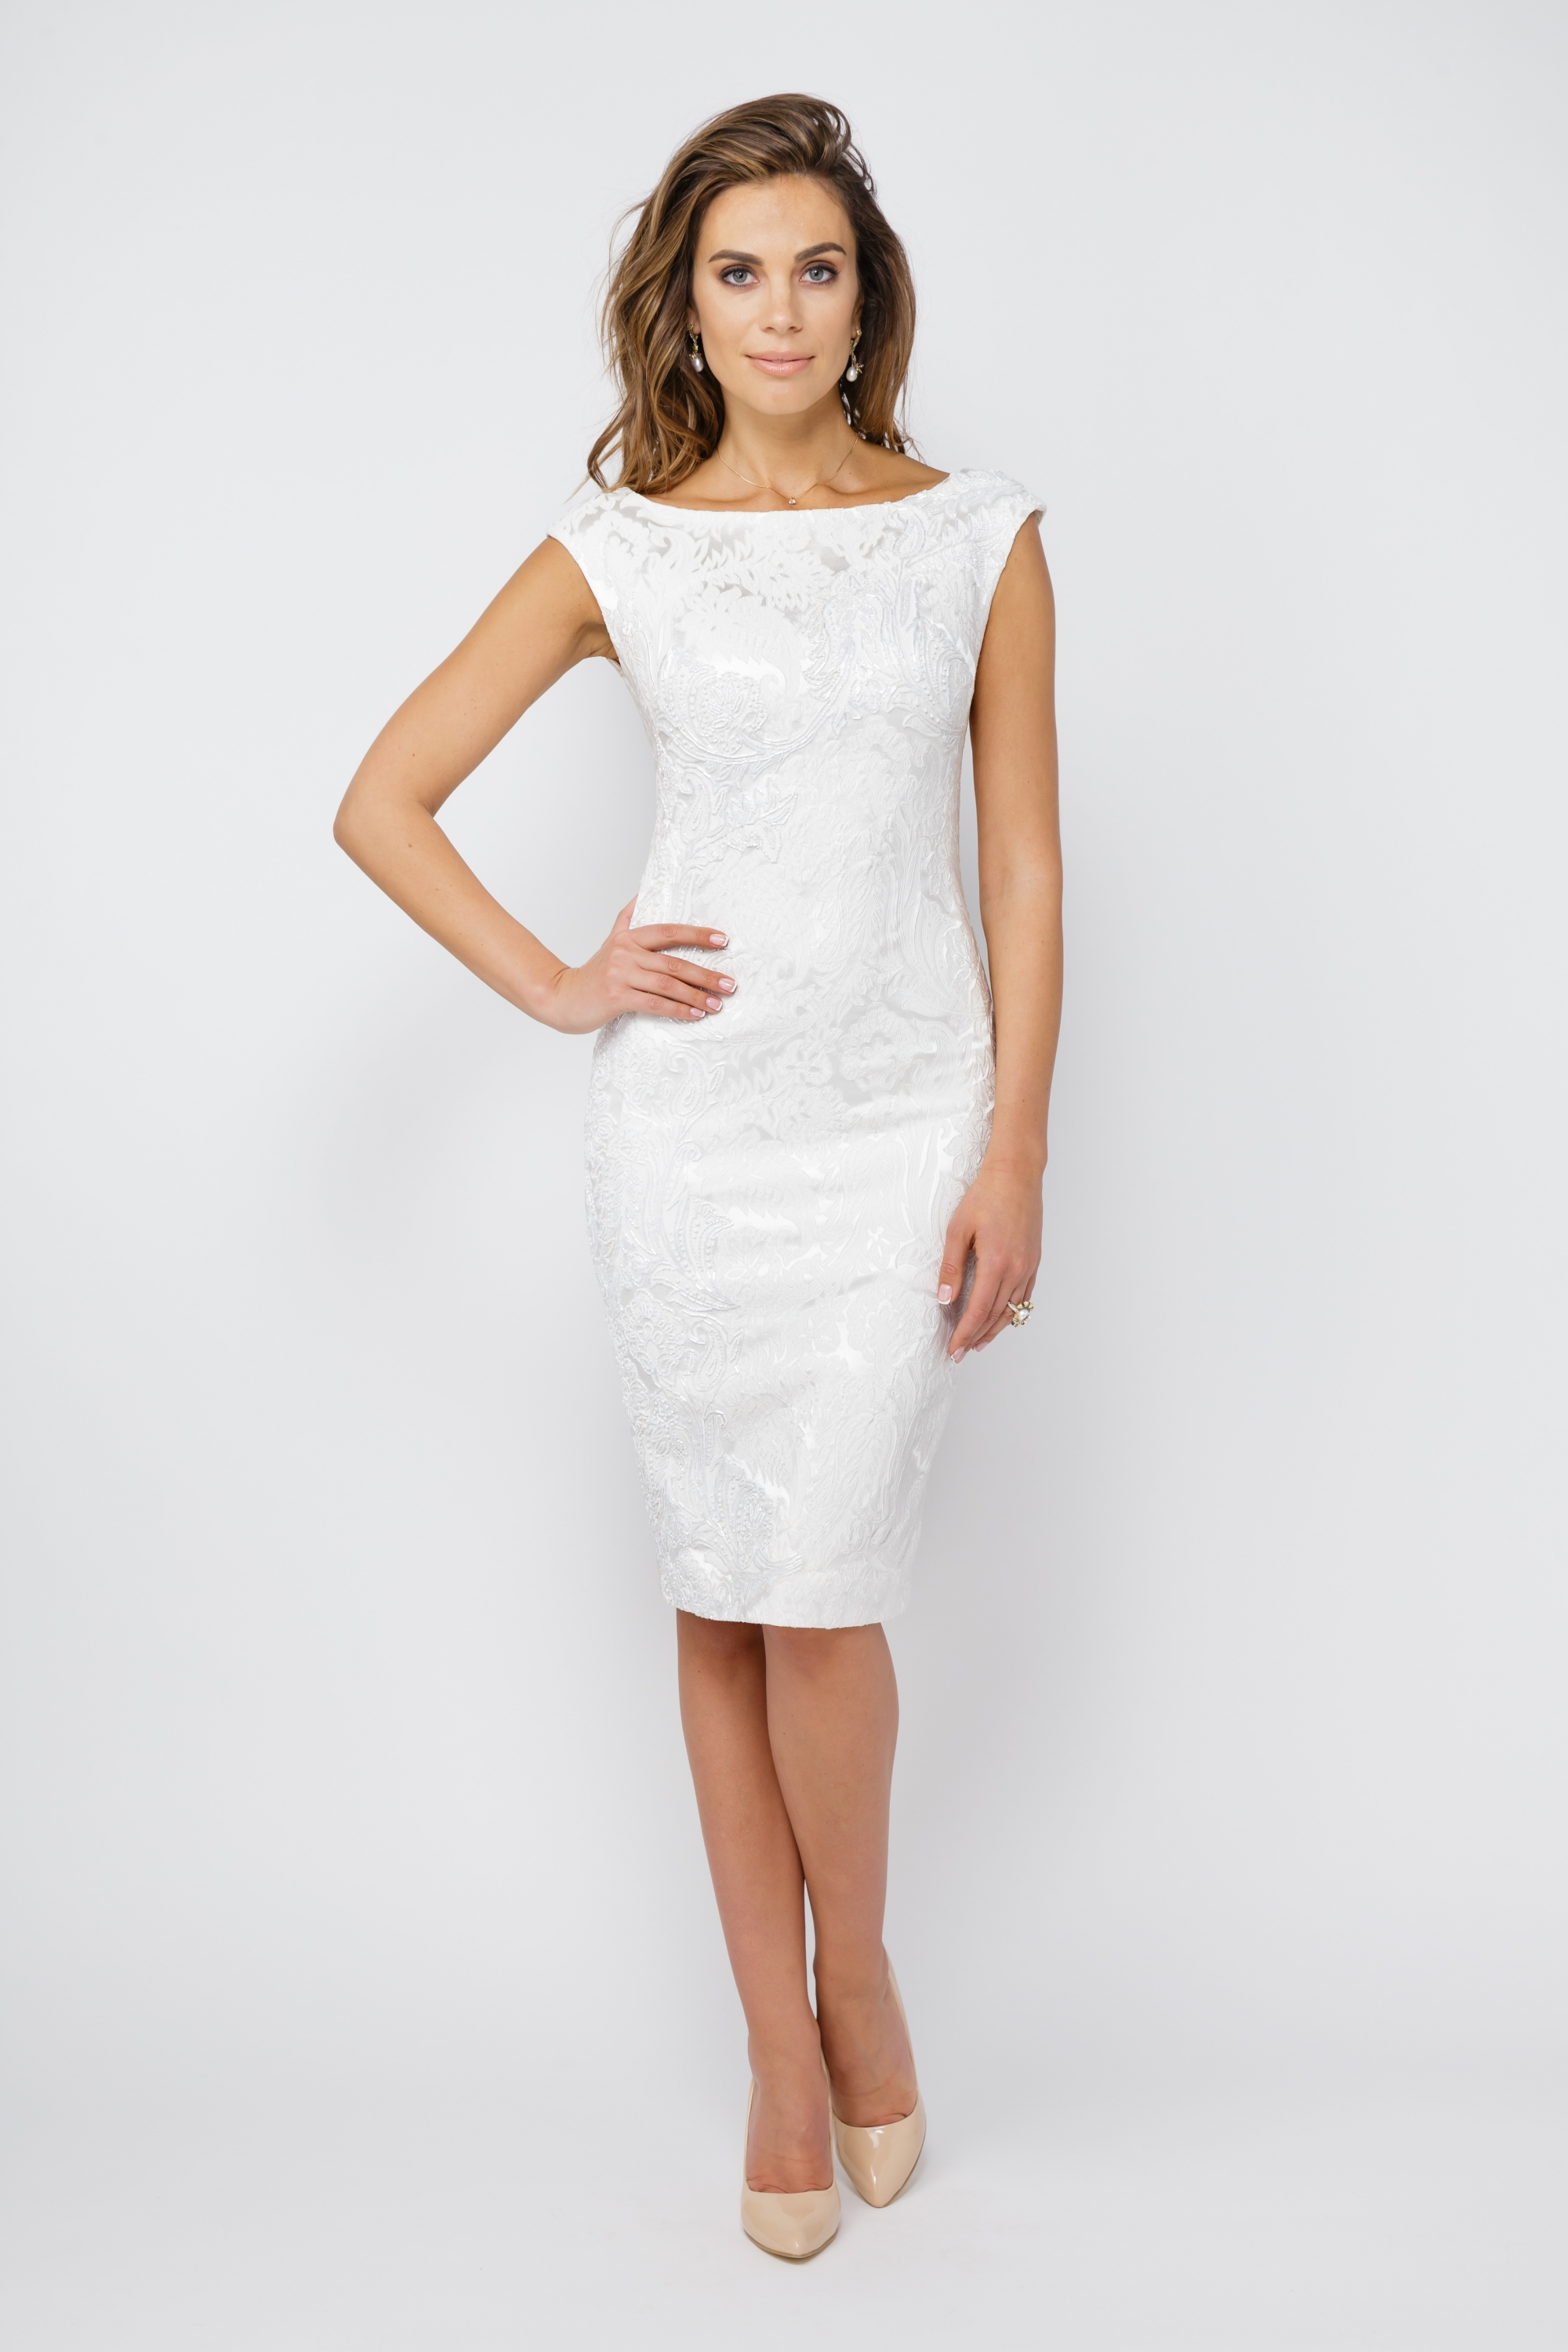 Classy Pencil Dress - Riasnoje Fashion Limited